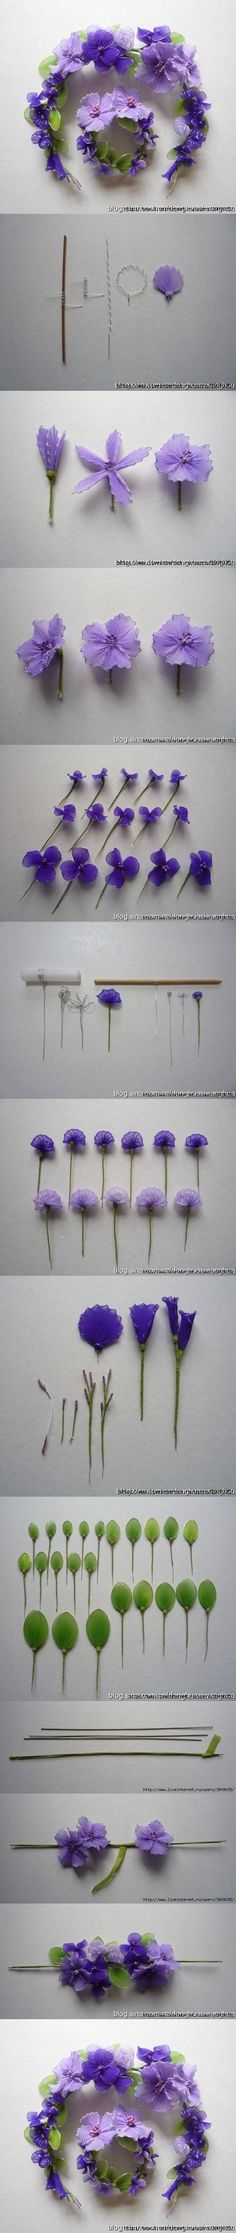 DIY Wire Nylon Flowers Pictures, Photos, and Images for Facebook, Tumblr, Pinterest, and Twitter